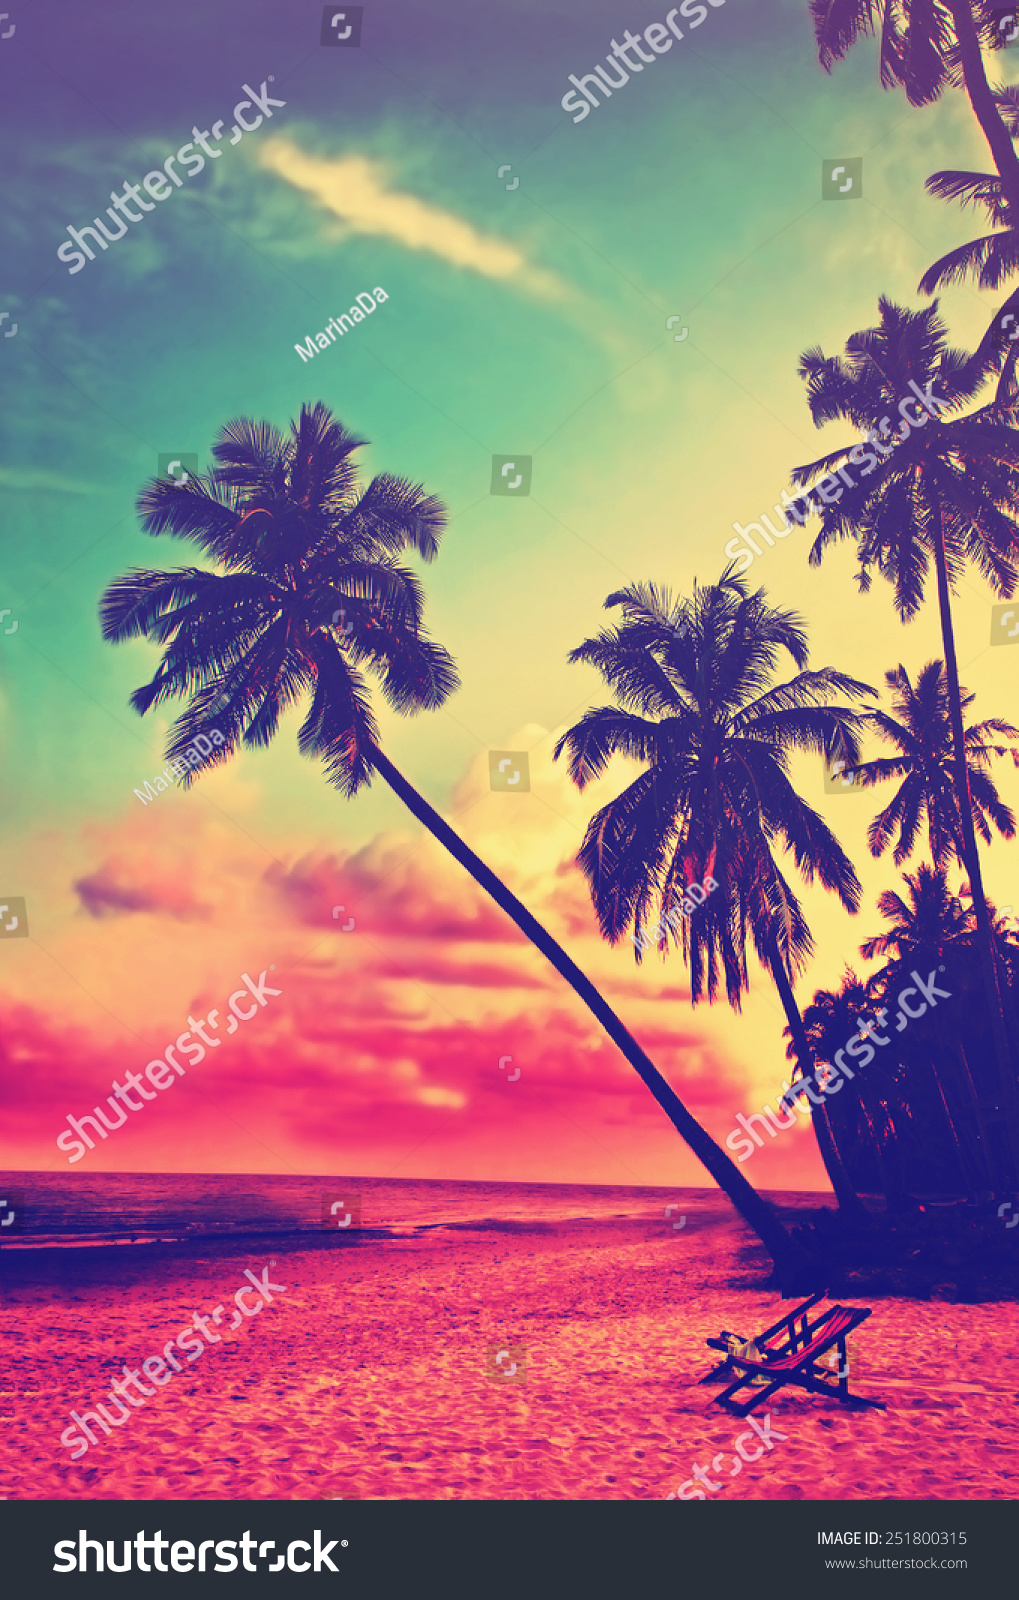 Beautiful Tropical Beach With Silhouettes Of Palm Trees At Sunset Travel Background Retro Vintage